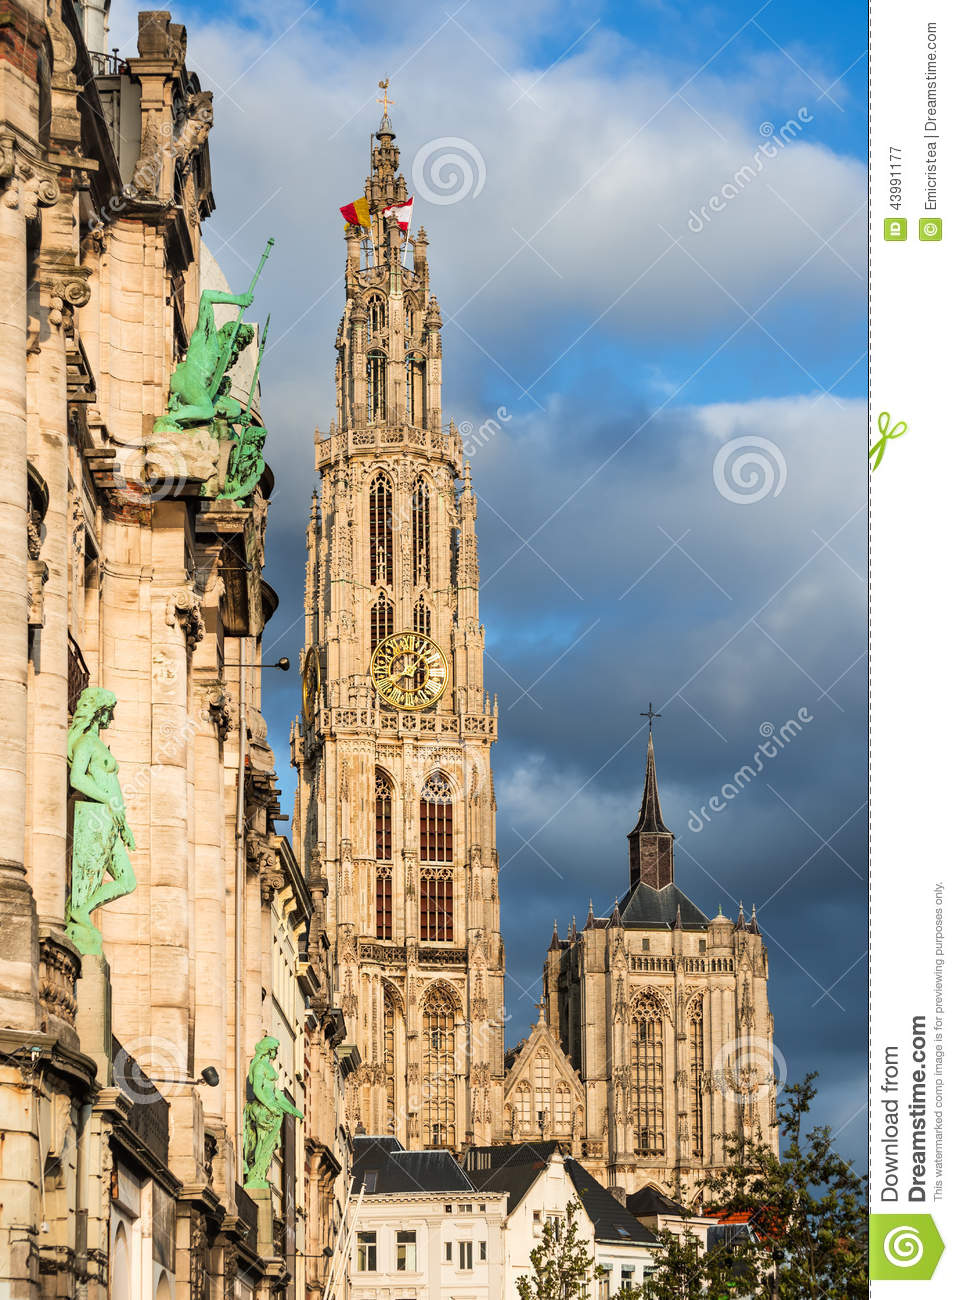 Spire Of Cathedral Of Our Lady, Antwerp, Belgium Stock Photo.